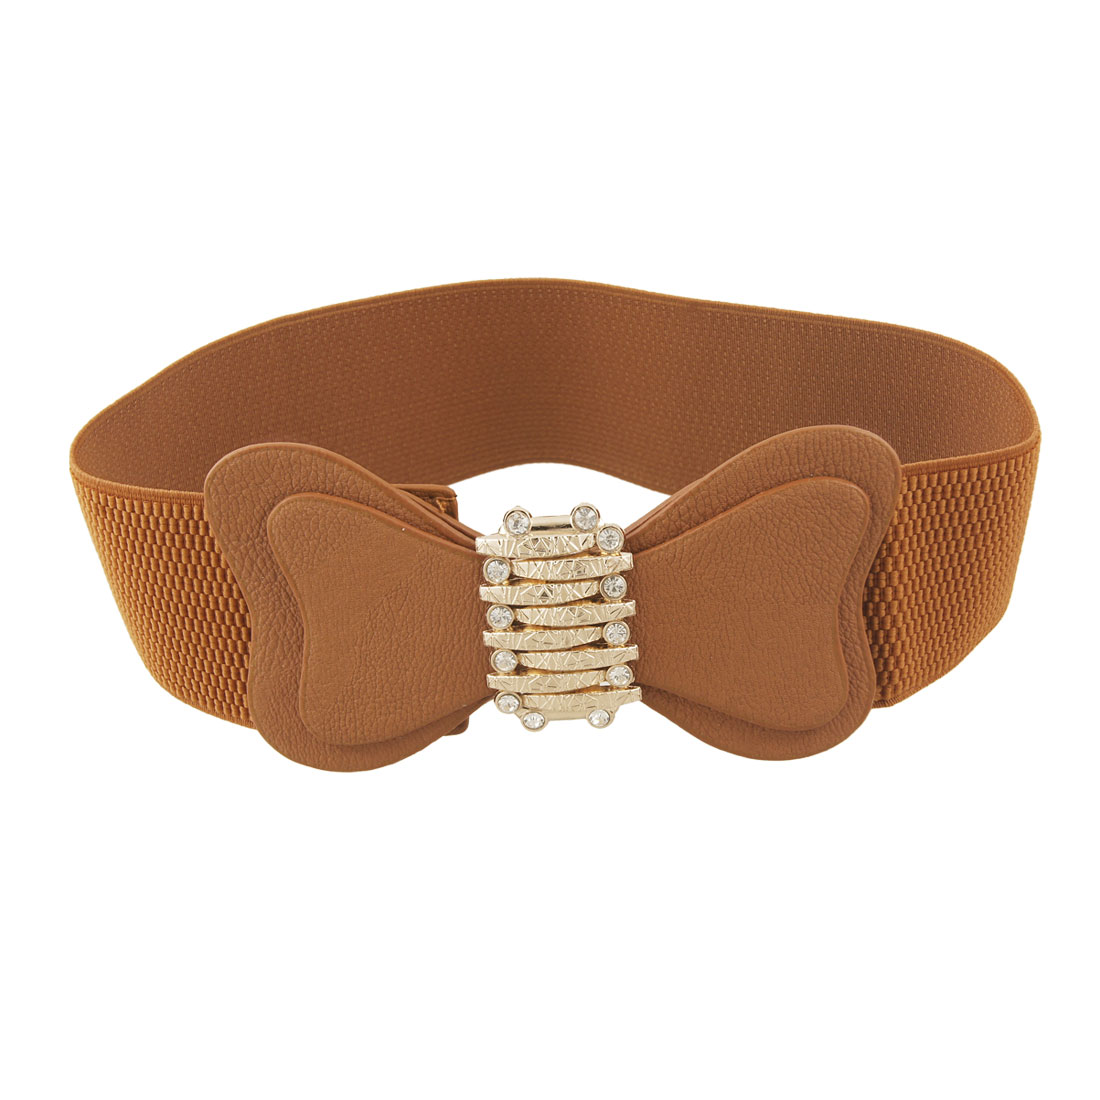 Ladies Gold Tone Metal Decor Brown Elastic Waist Cinch Belt